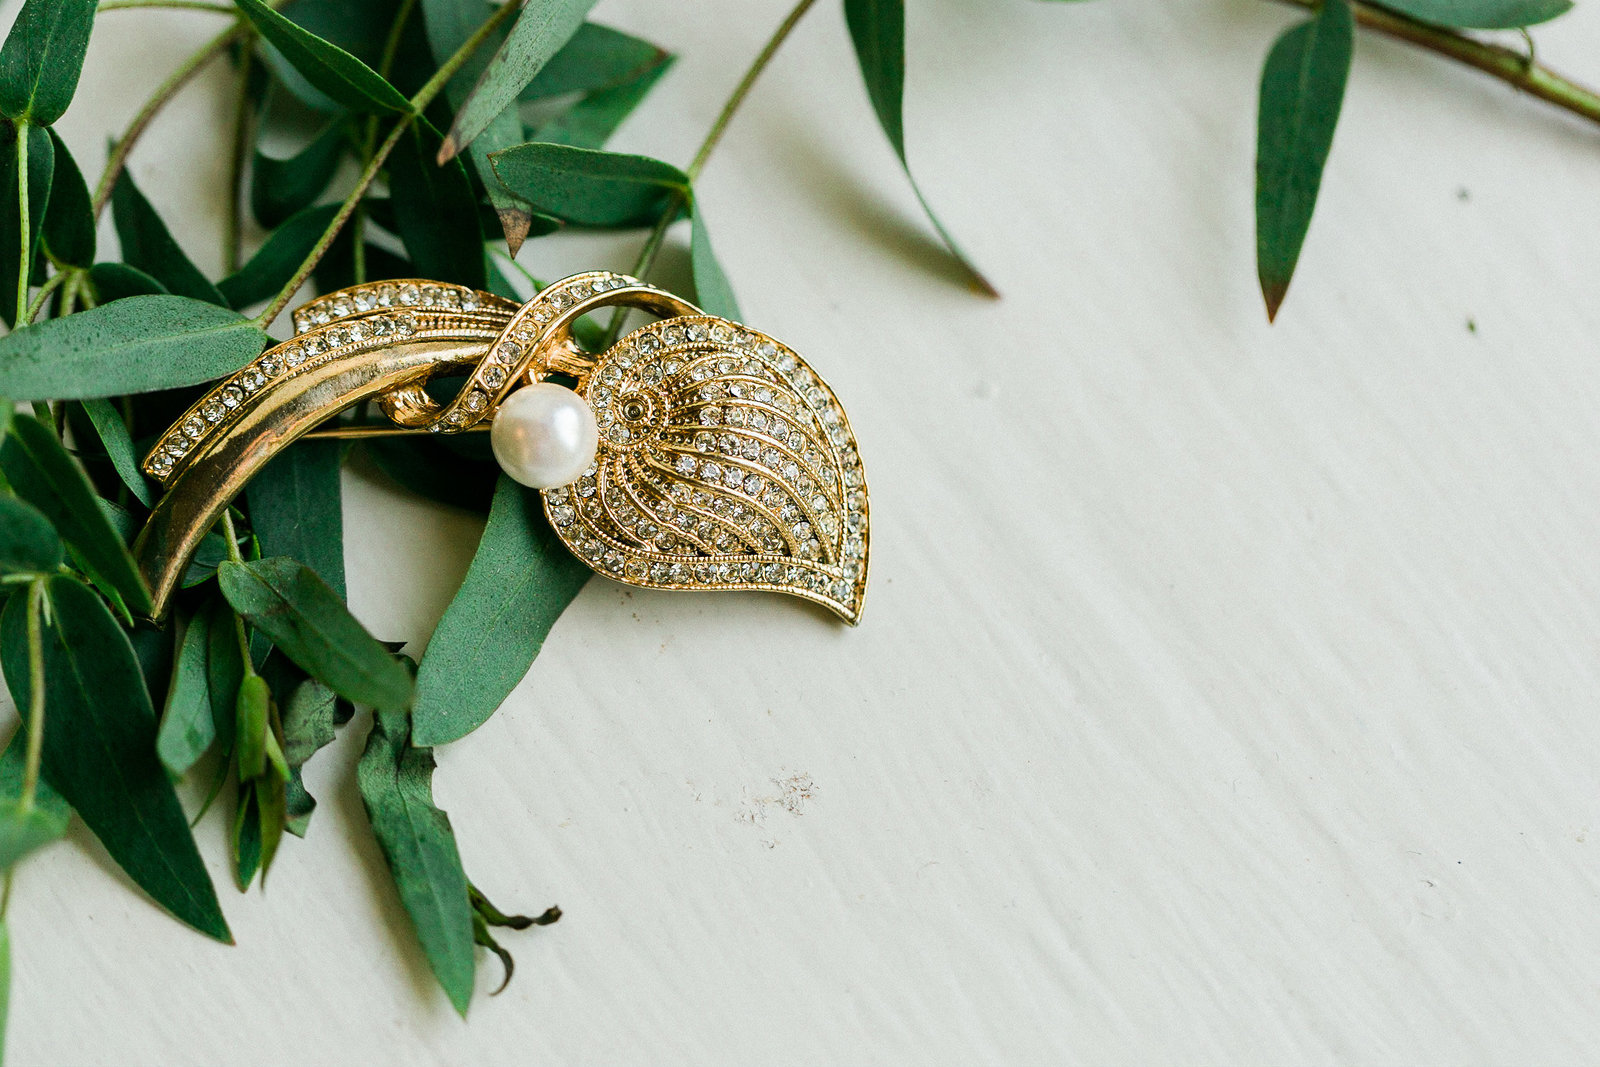 Heirloom broach on white wood with greenery